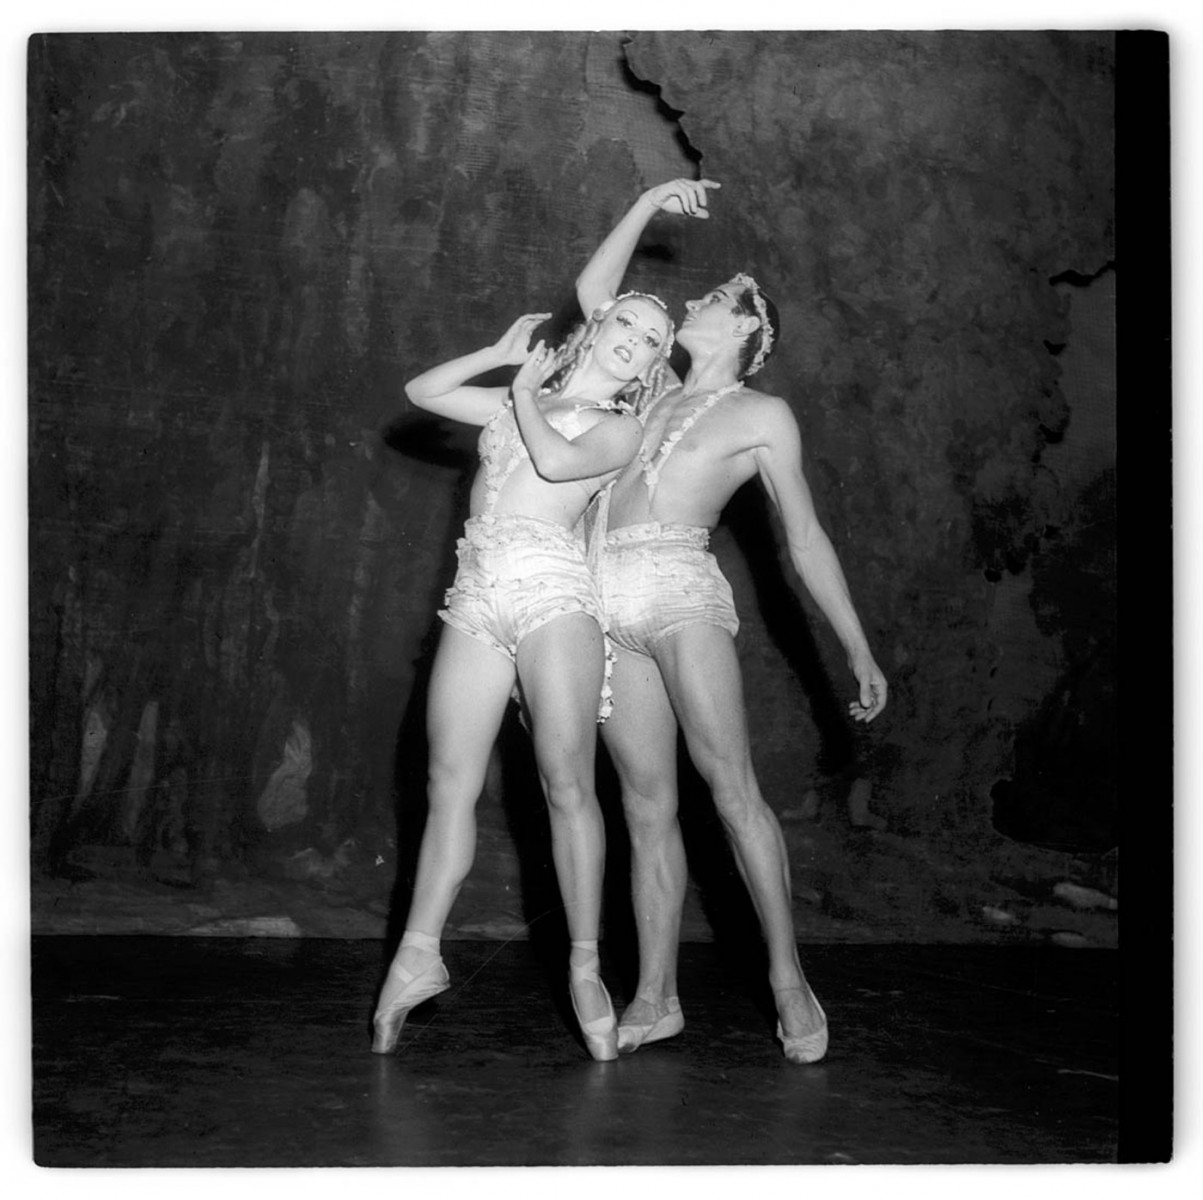 Tatiana Riabouchinska and Roman Jasinsky in Les Dieux mendiants, photo Max Dupain, courtesy State Library of NSW, Mitchell Library, PXA 945/54- 55